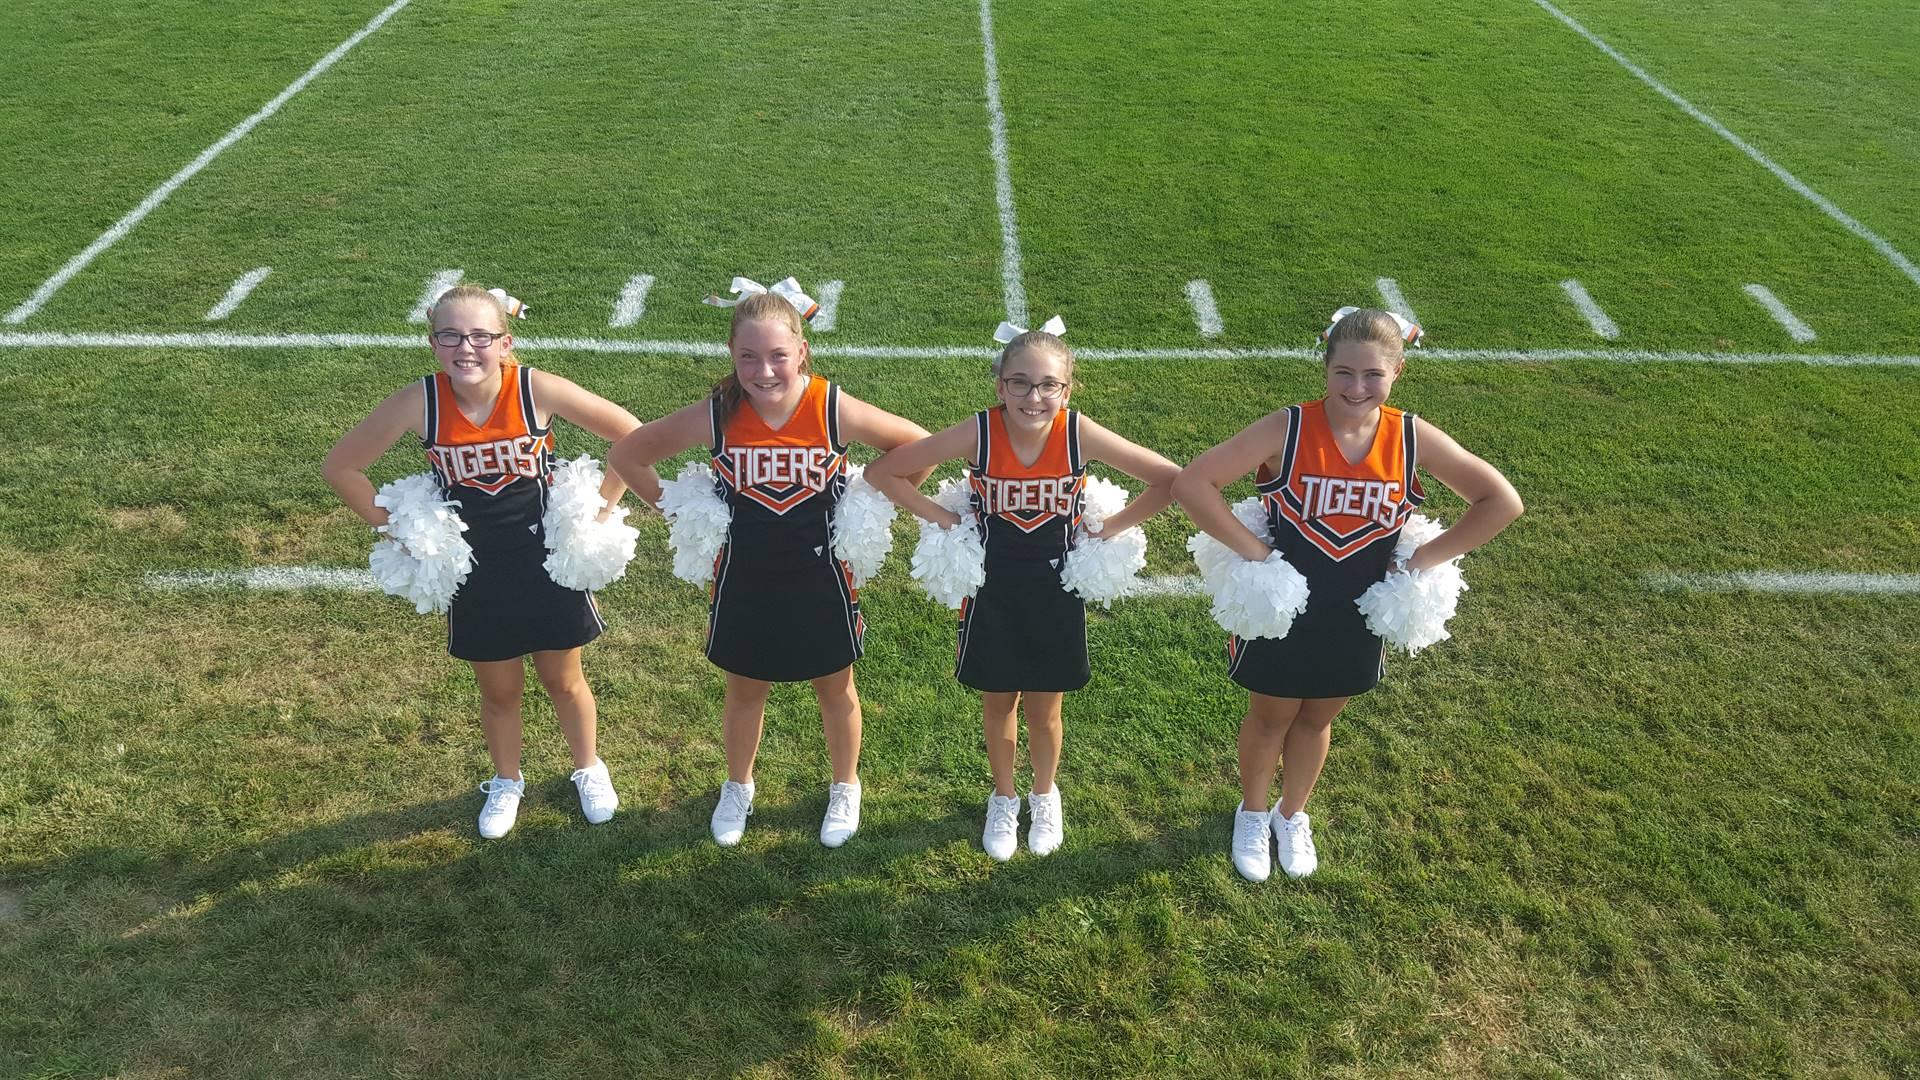 7th grade football cheerleaders